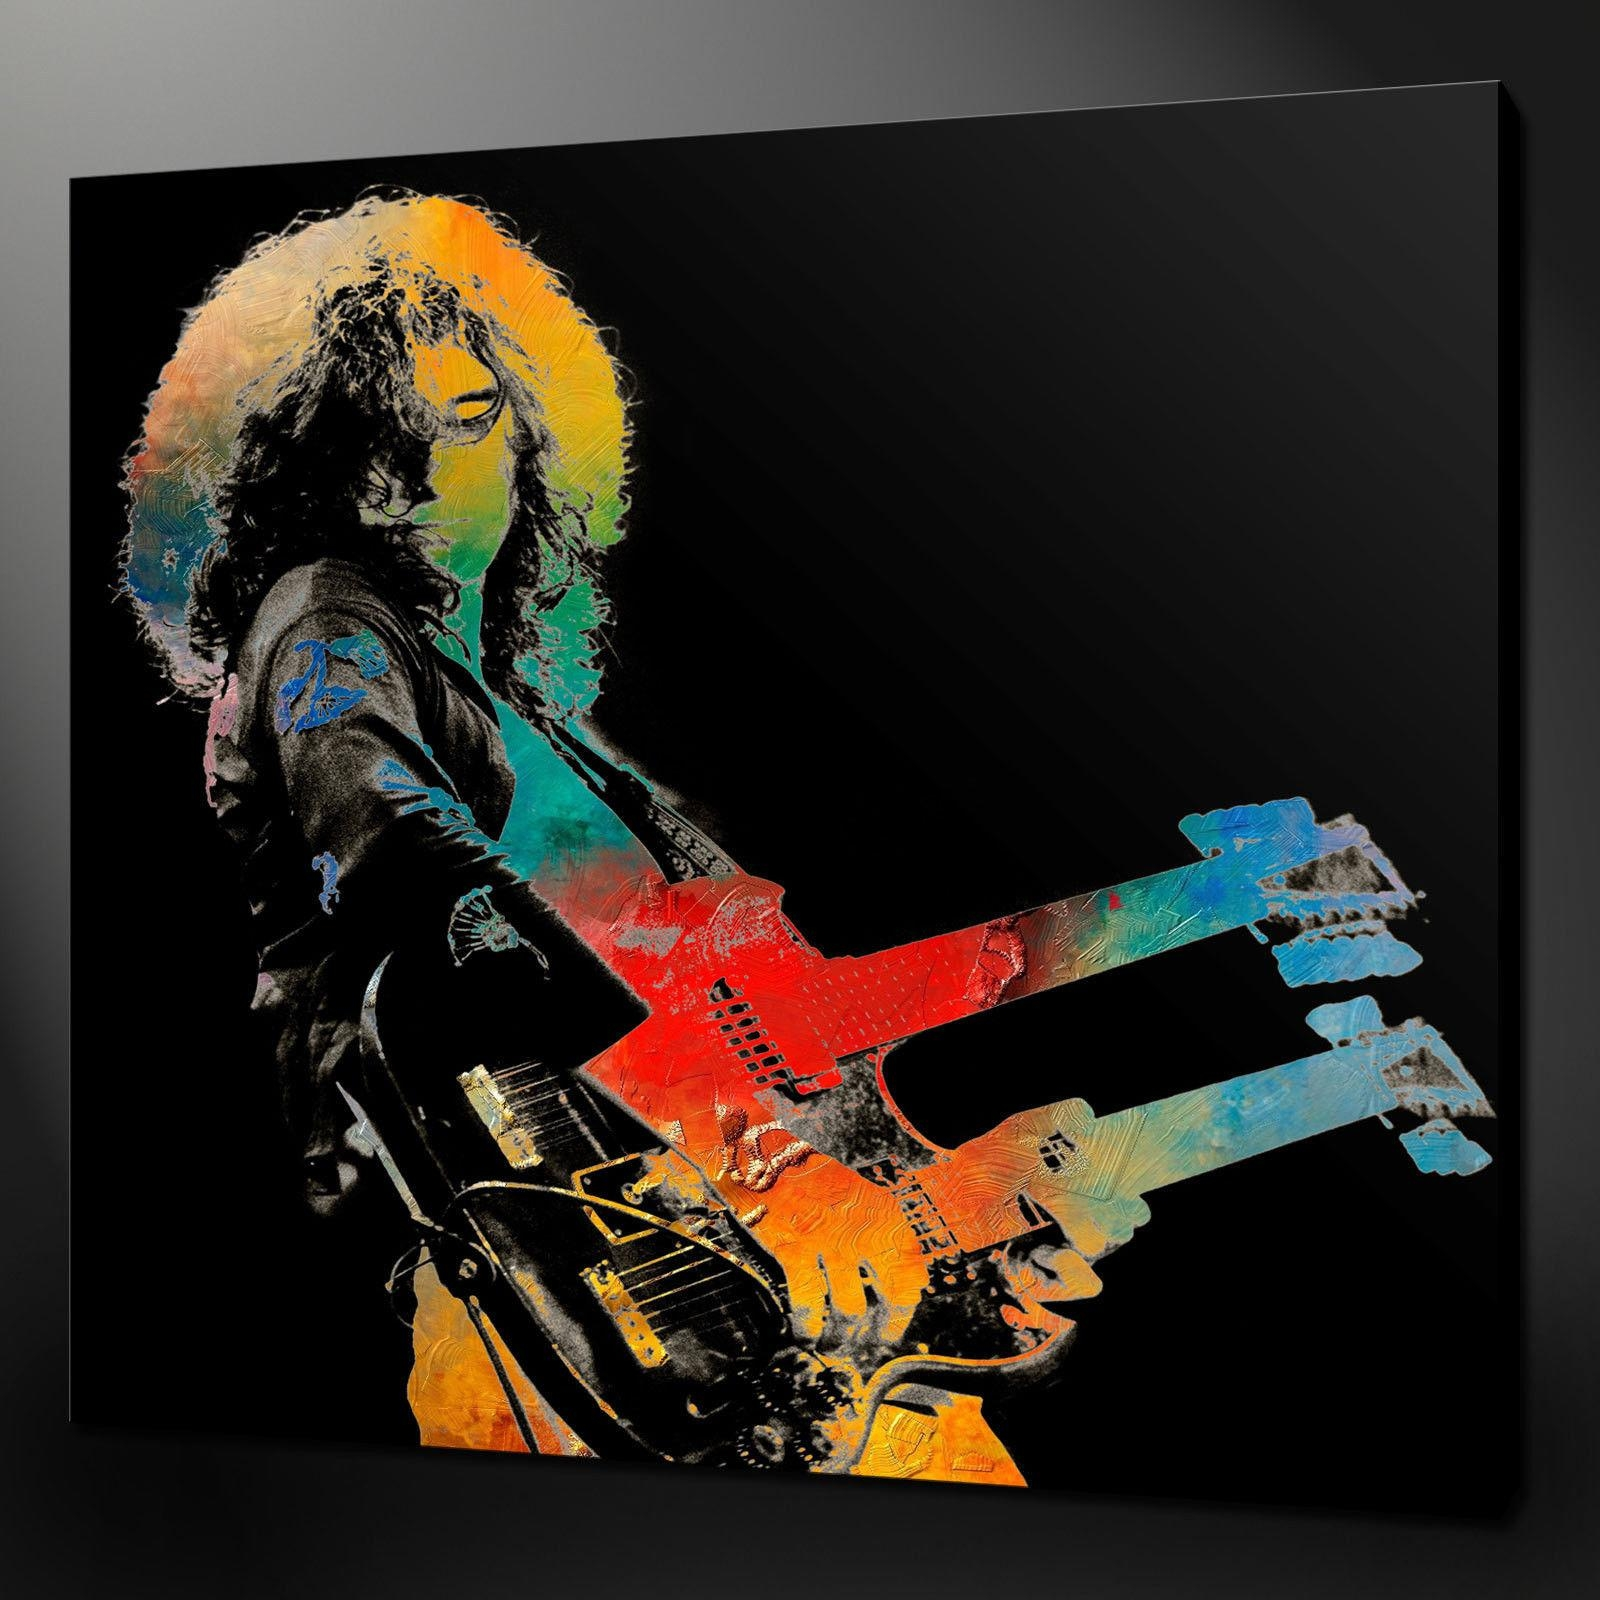 Robert Plant Led Zeppelin Canvas Wall Art Pictures Prints Variety Pertaining To Led Zeppelin Wall Art (Image 17 of 20)